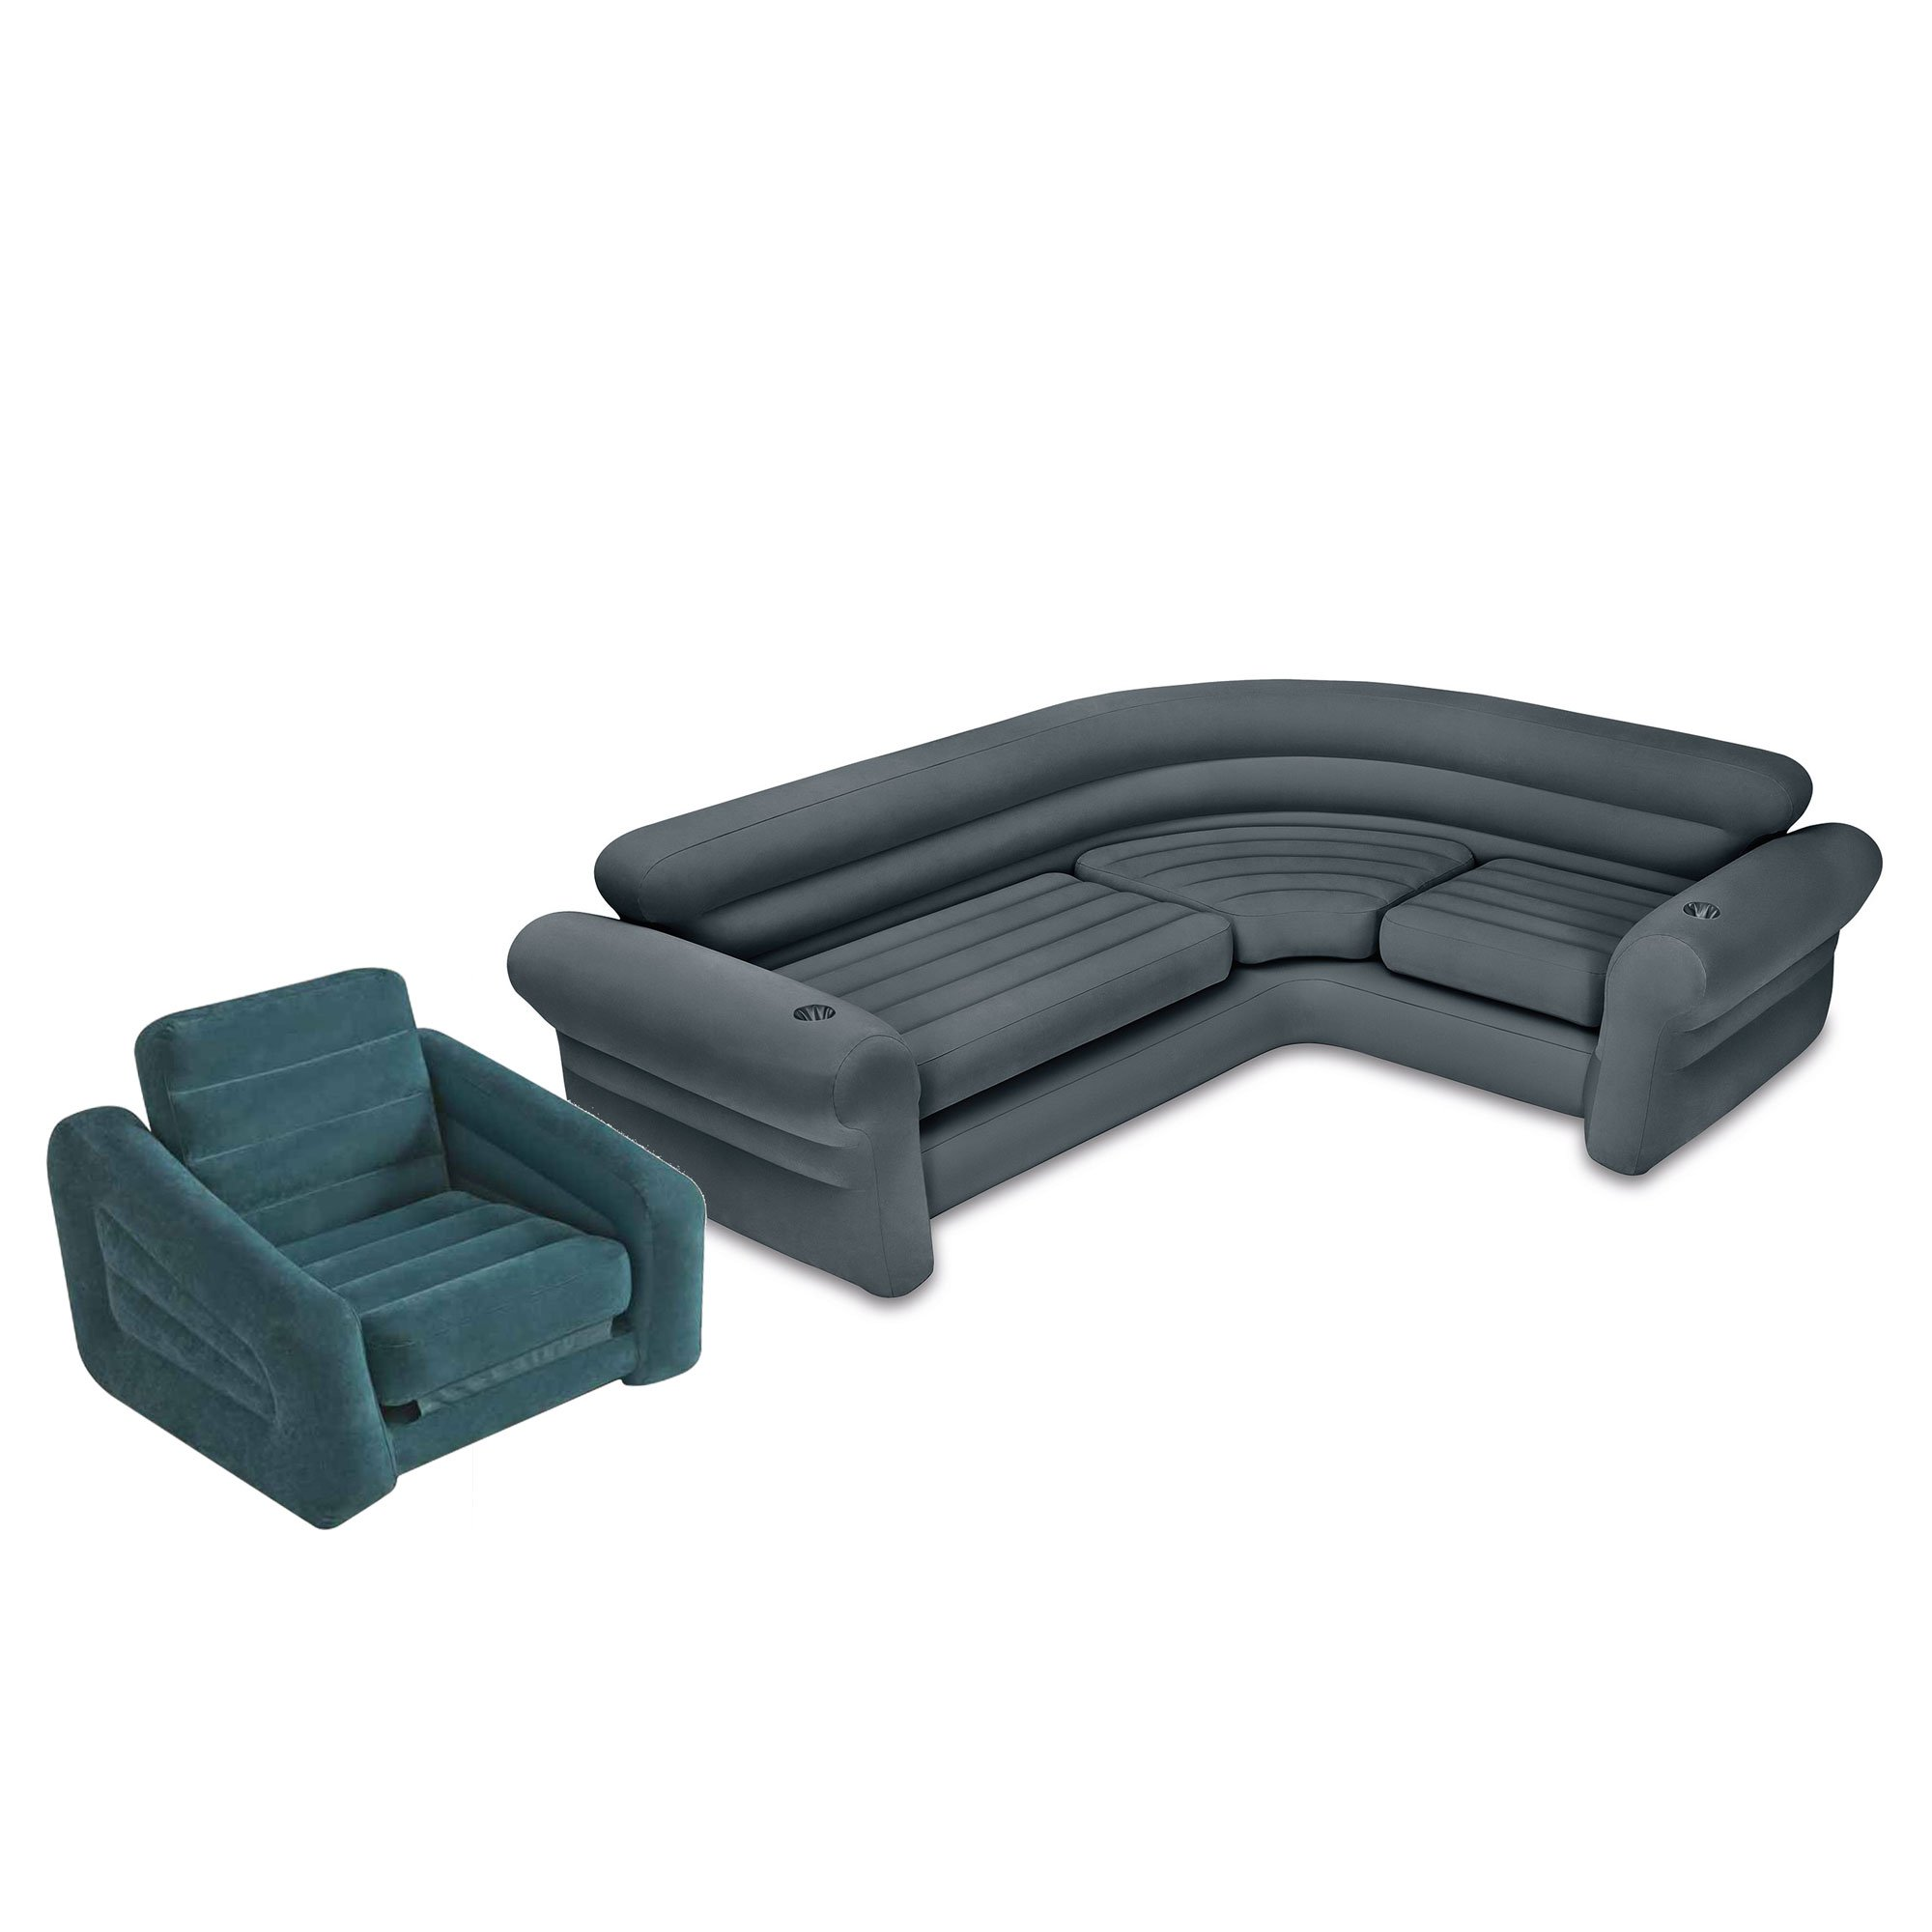 Intex Inflatable Corner Couch Sectional Sofa and Pull-Out Twin Air Bed Sleeper by Intex